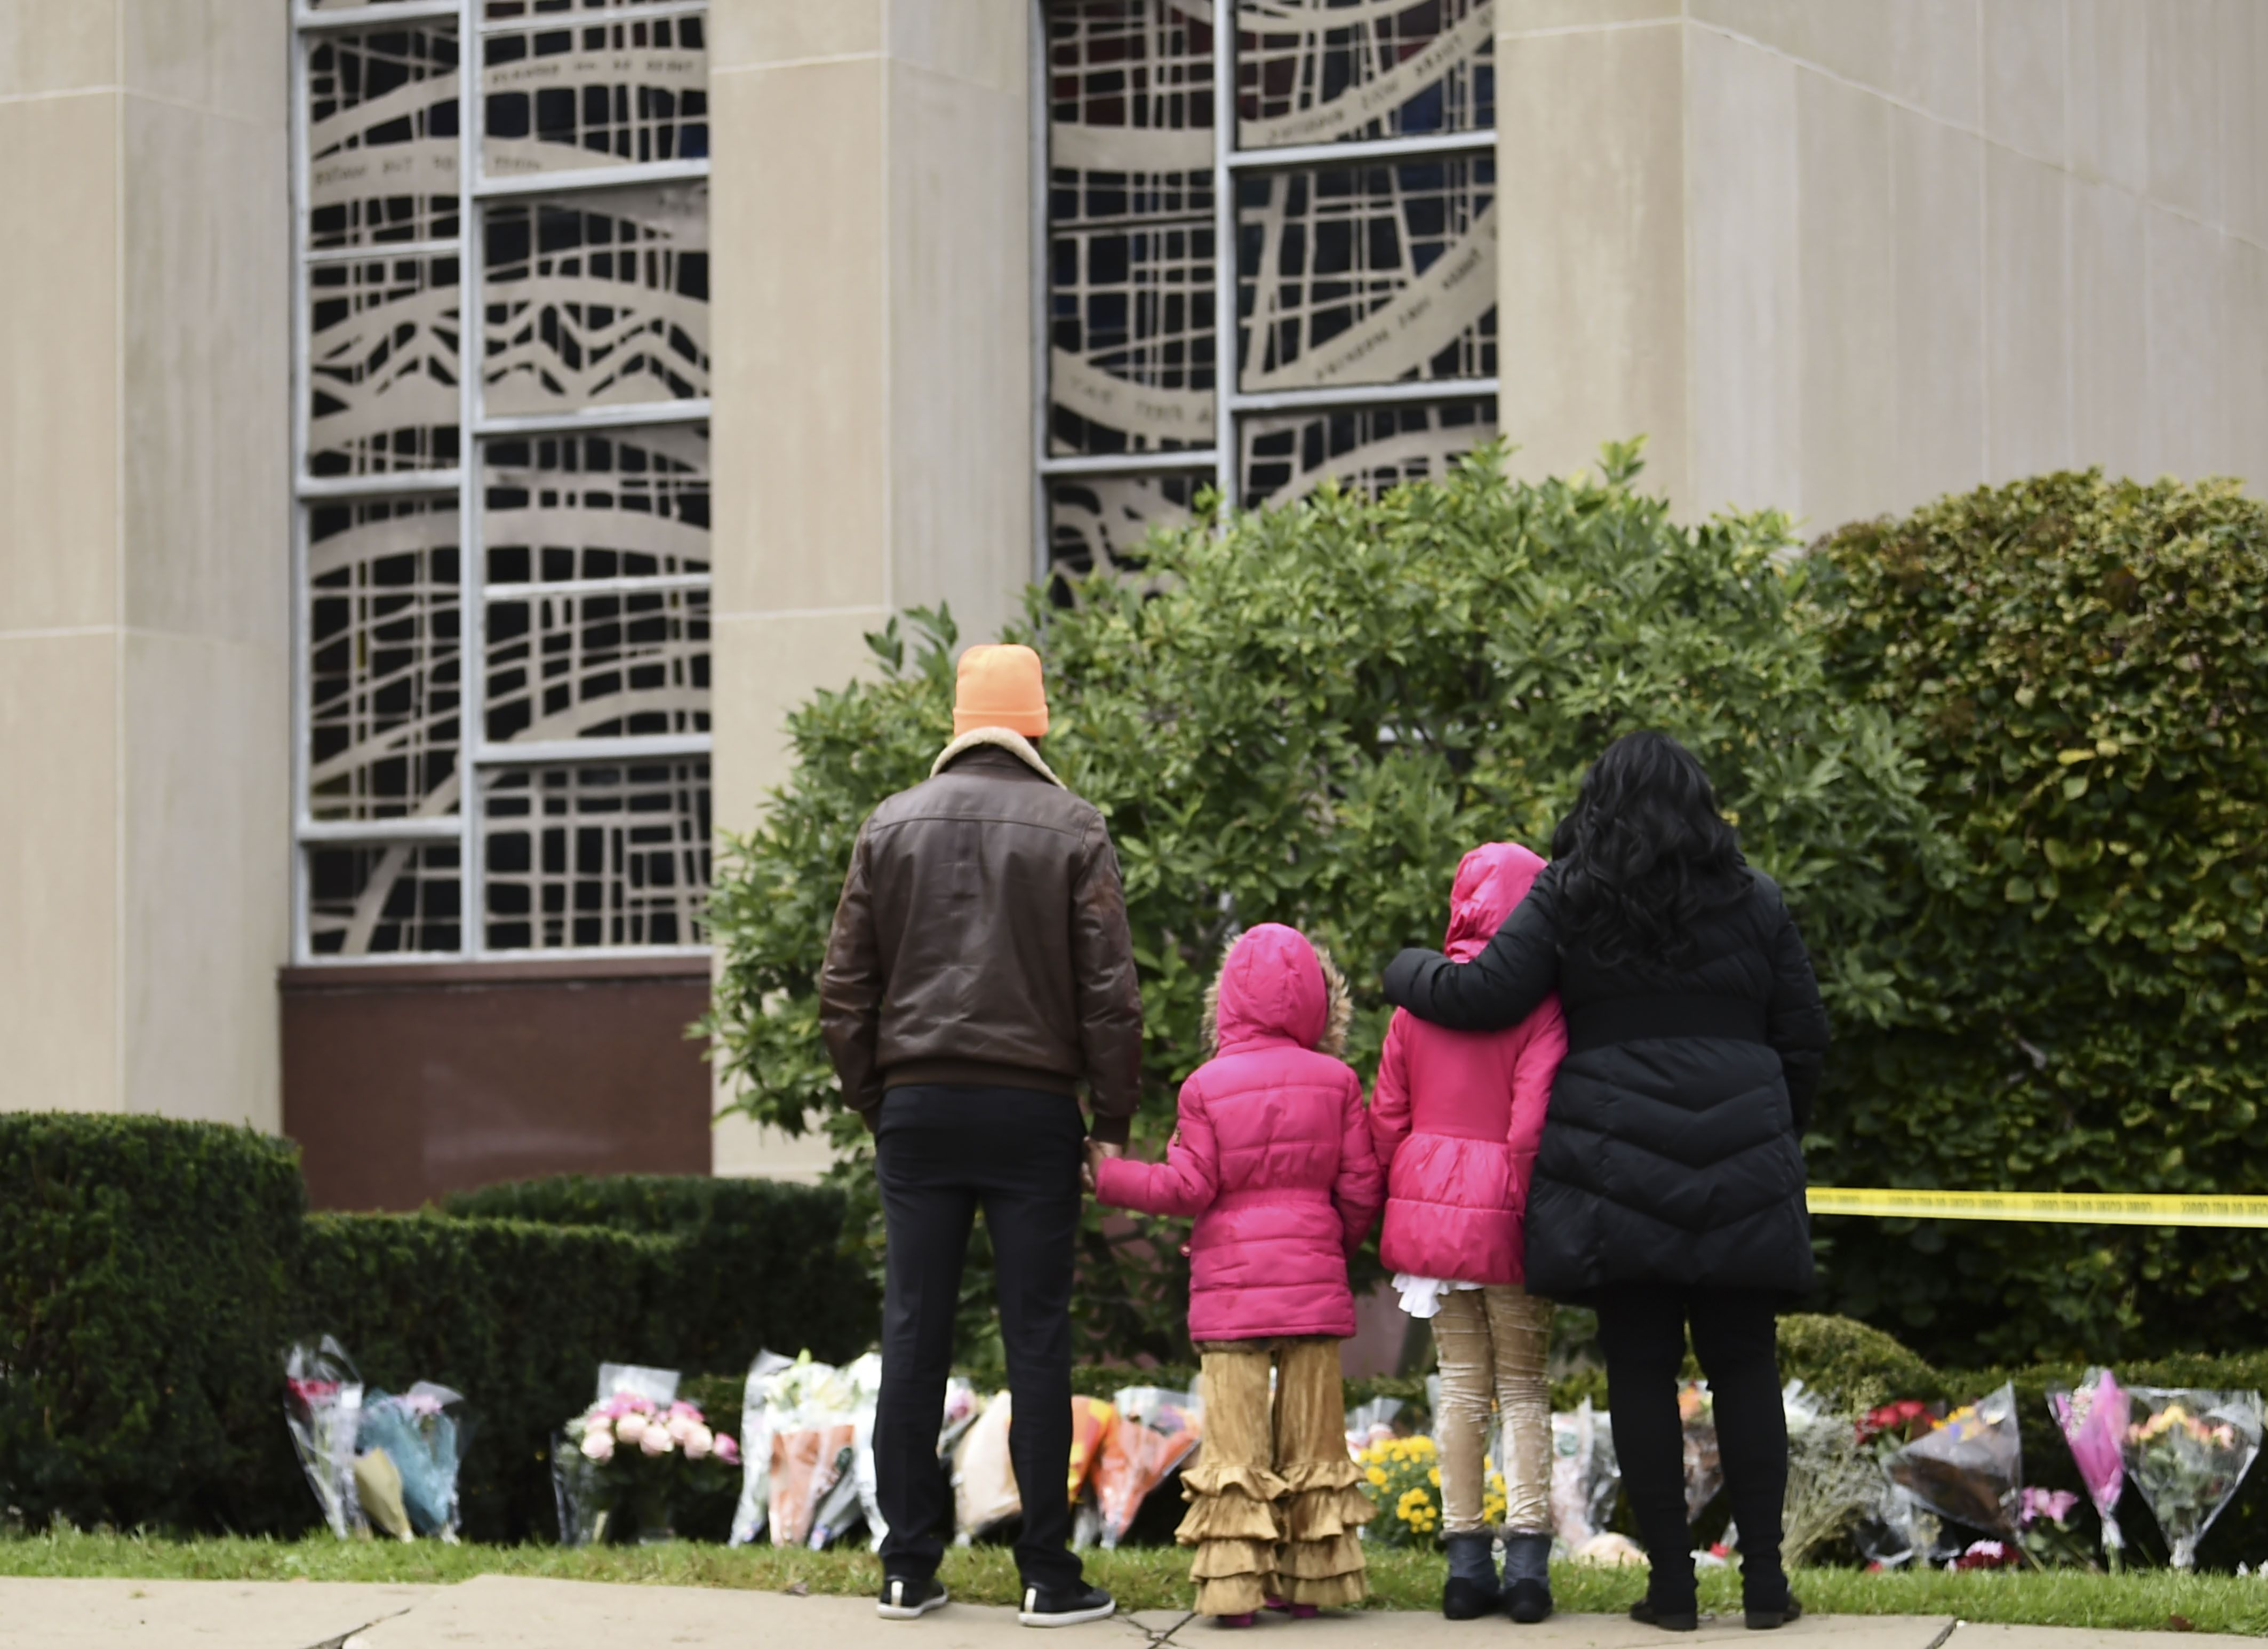 Muslims Raise More Than $60K For Pittsburgh Synagogue Victims